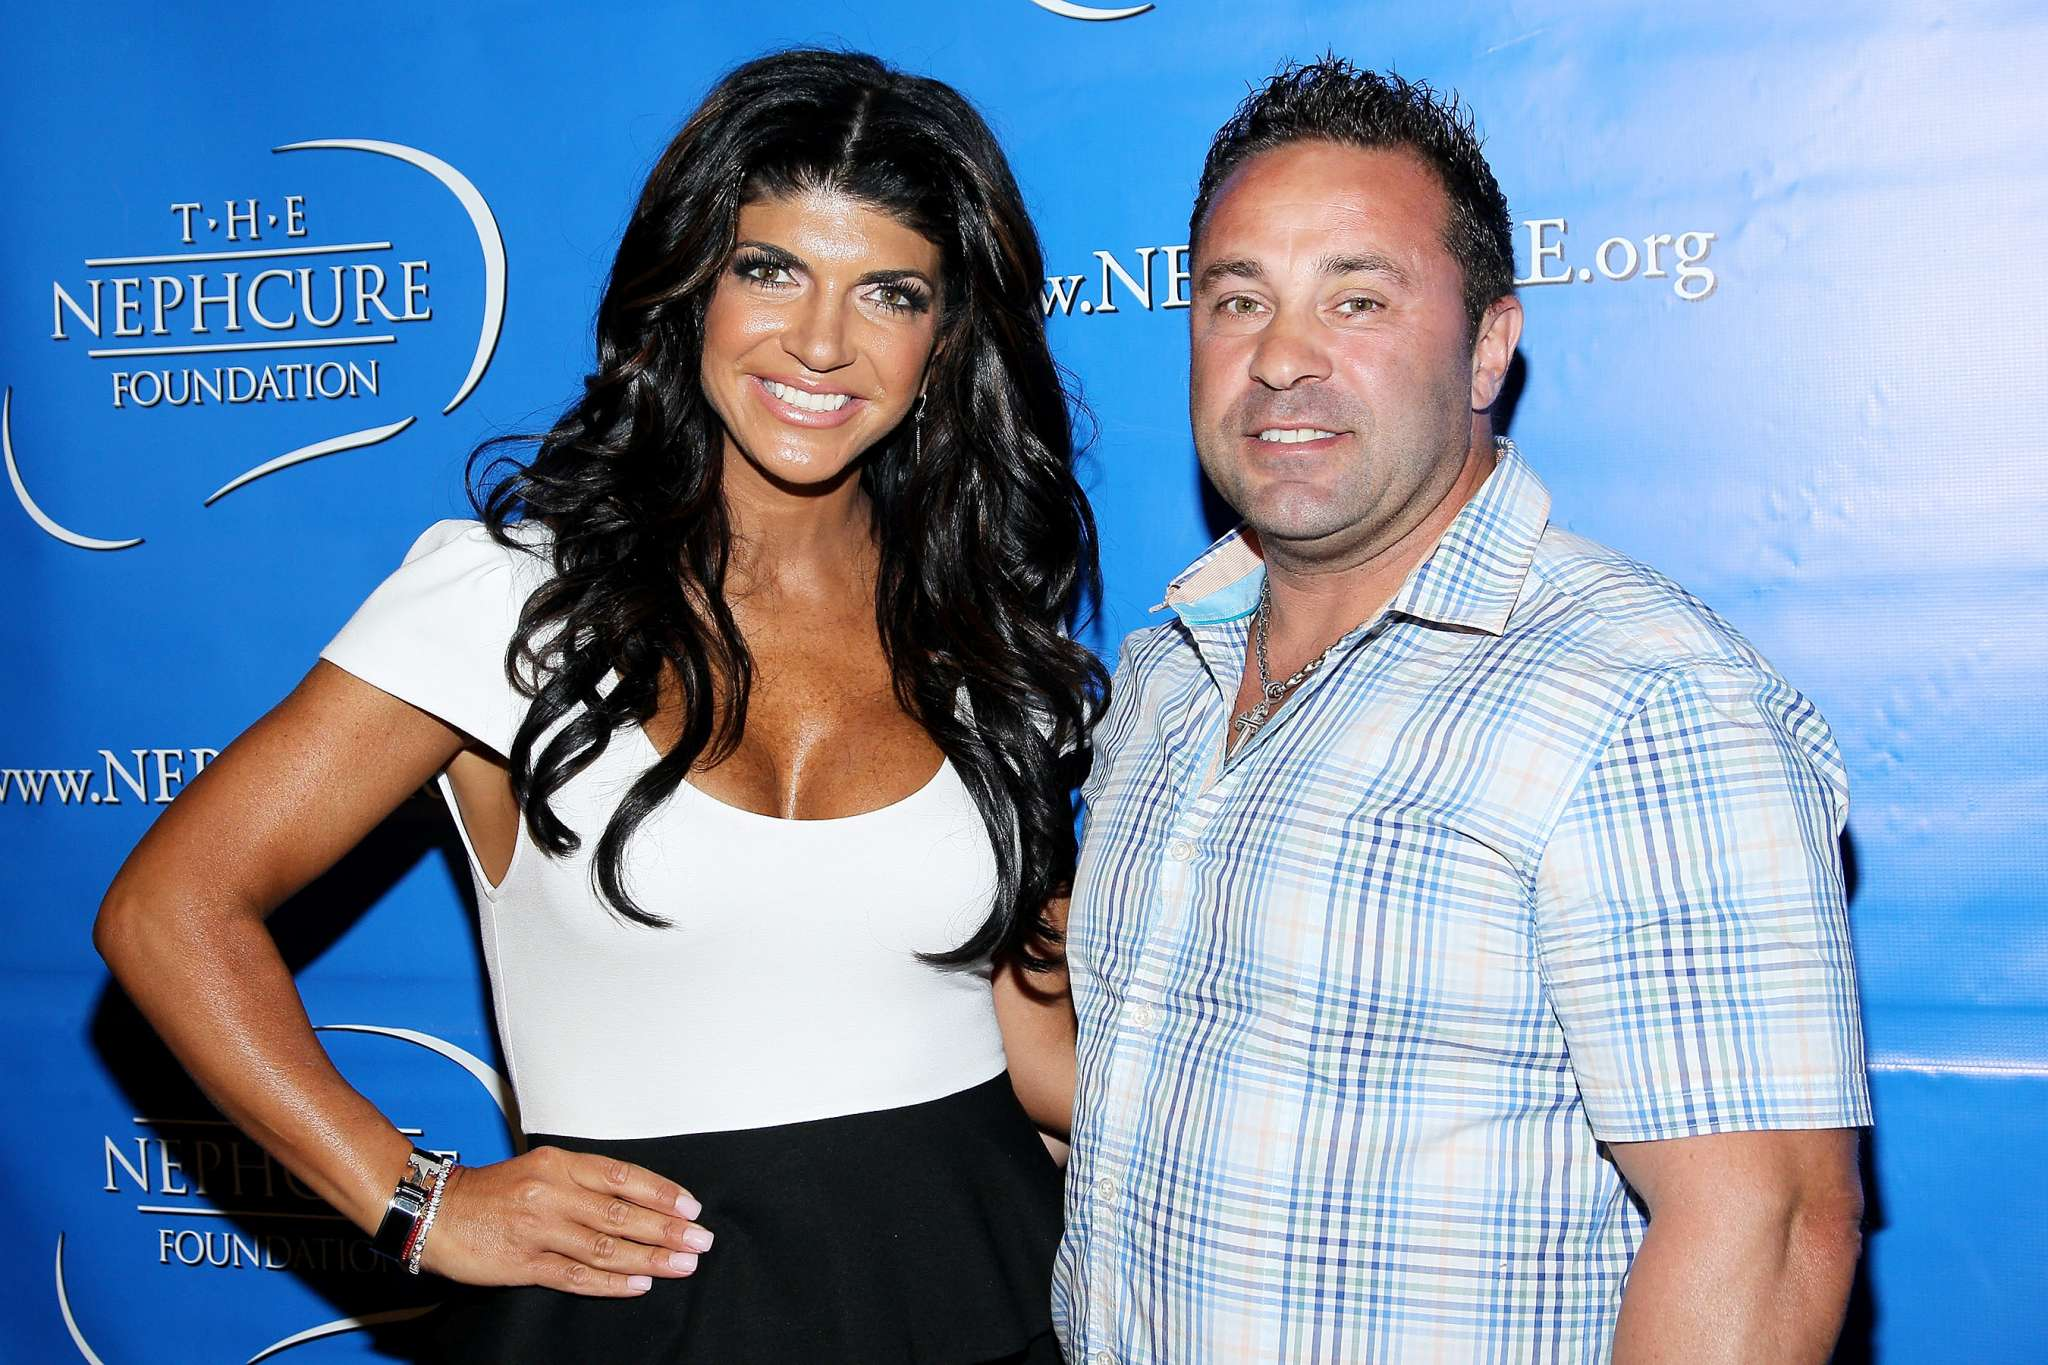 teresa-giudice-has-dinner-with-trump-official-while-rhonj-fans-petition-for-the-president-to-pardon-her-husband-joe